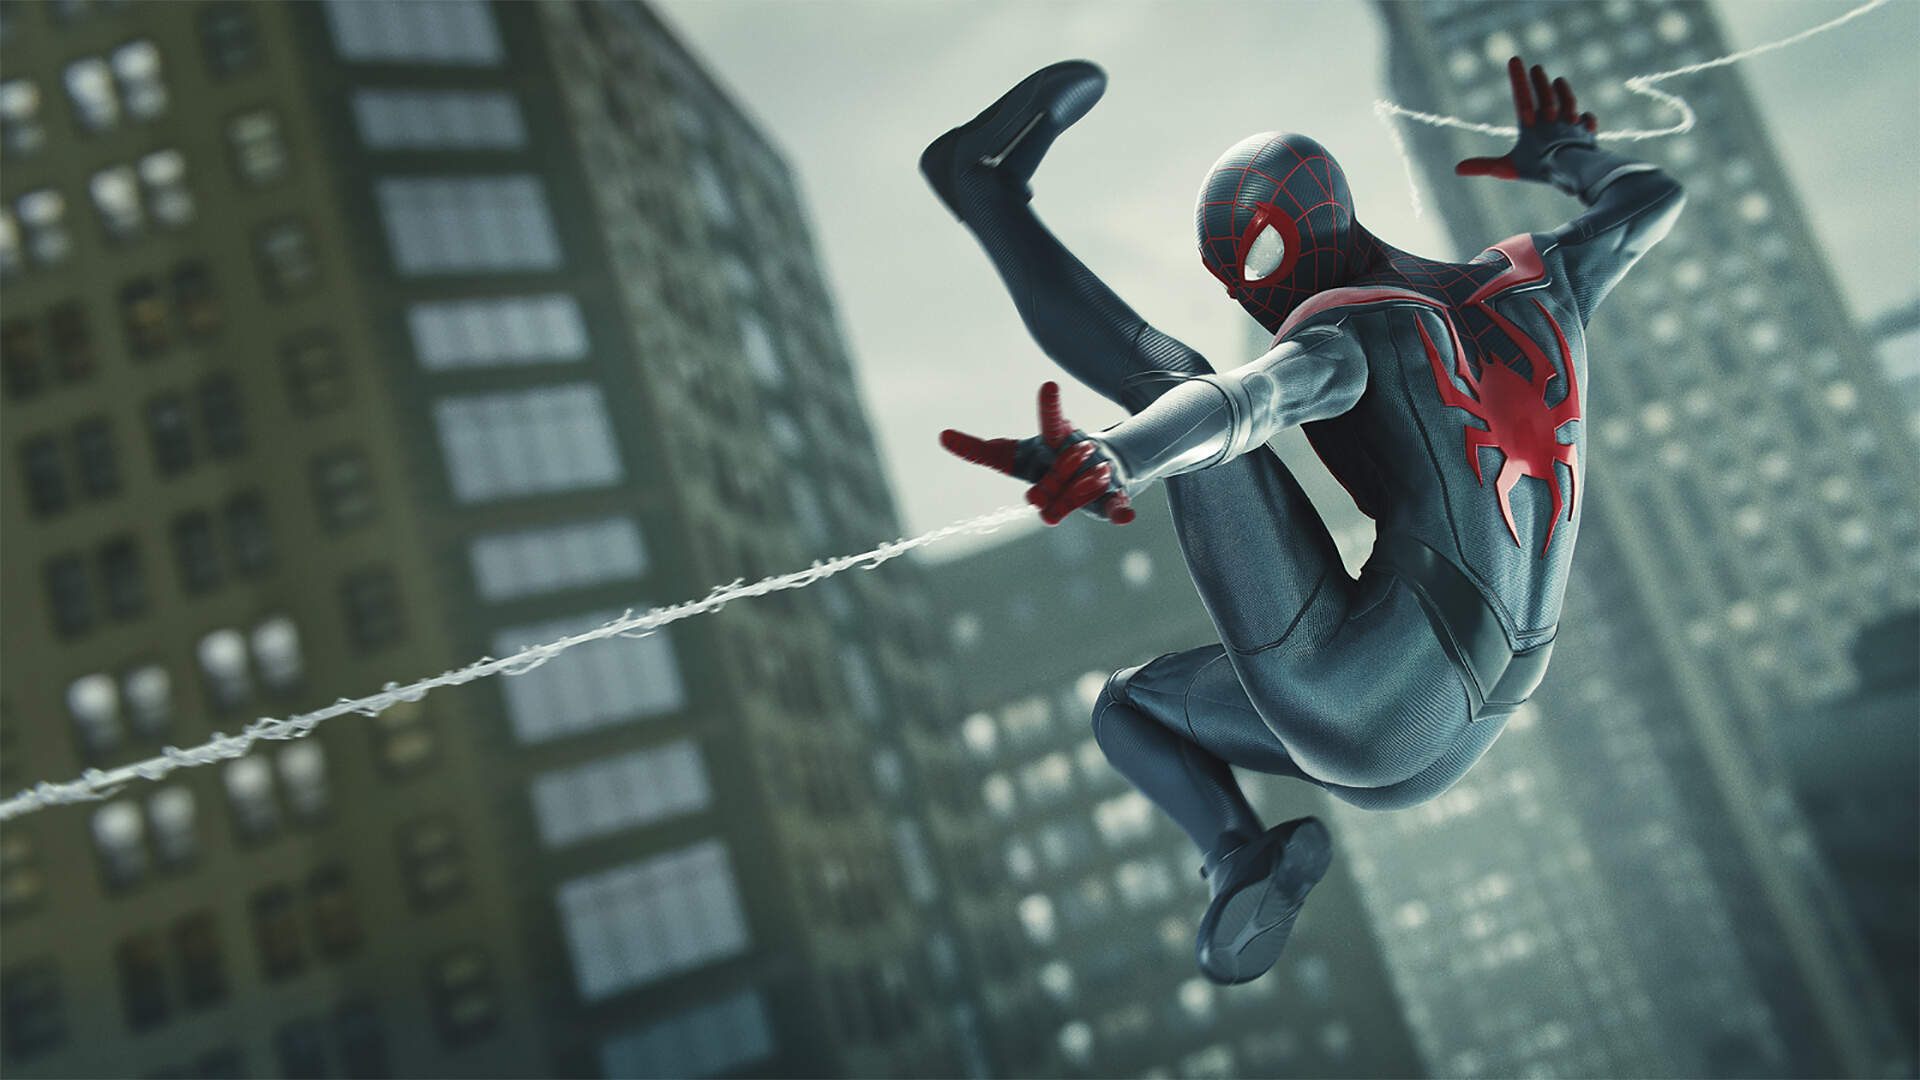 Marvel's Spider-Man: Miles Morales Review: Our Hero Swings to His Own Confident  Beat